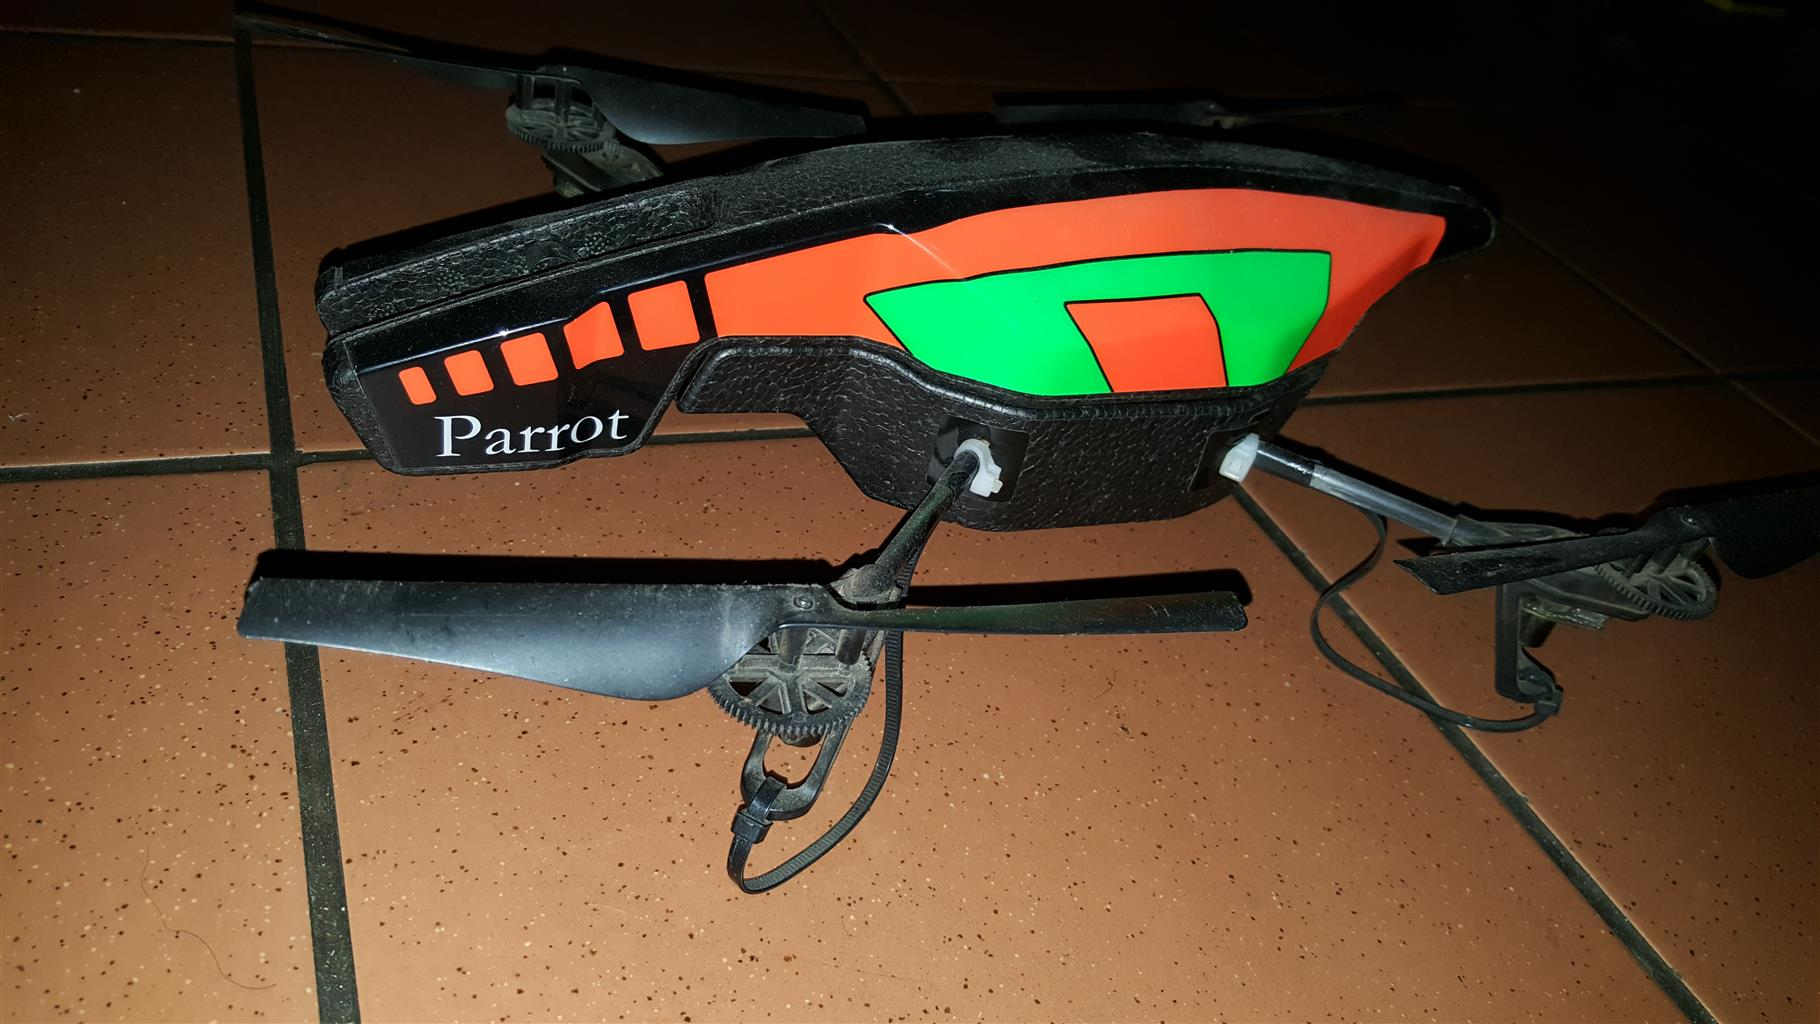 Parrot drone for sale